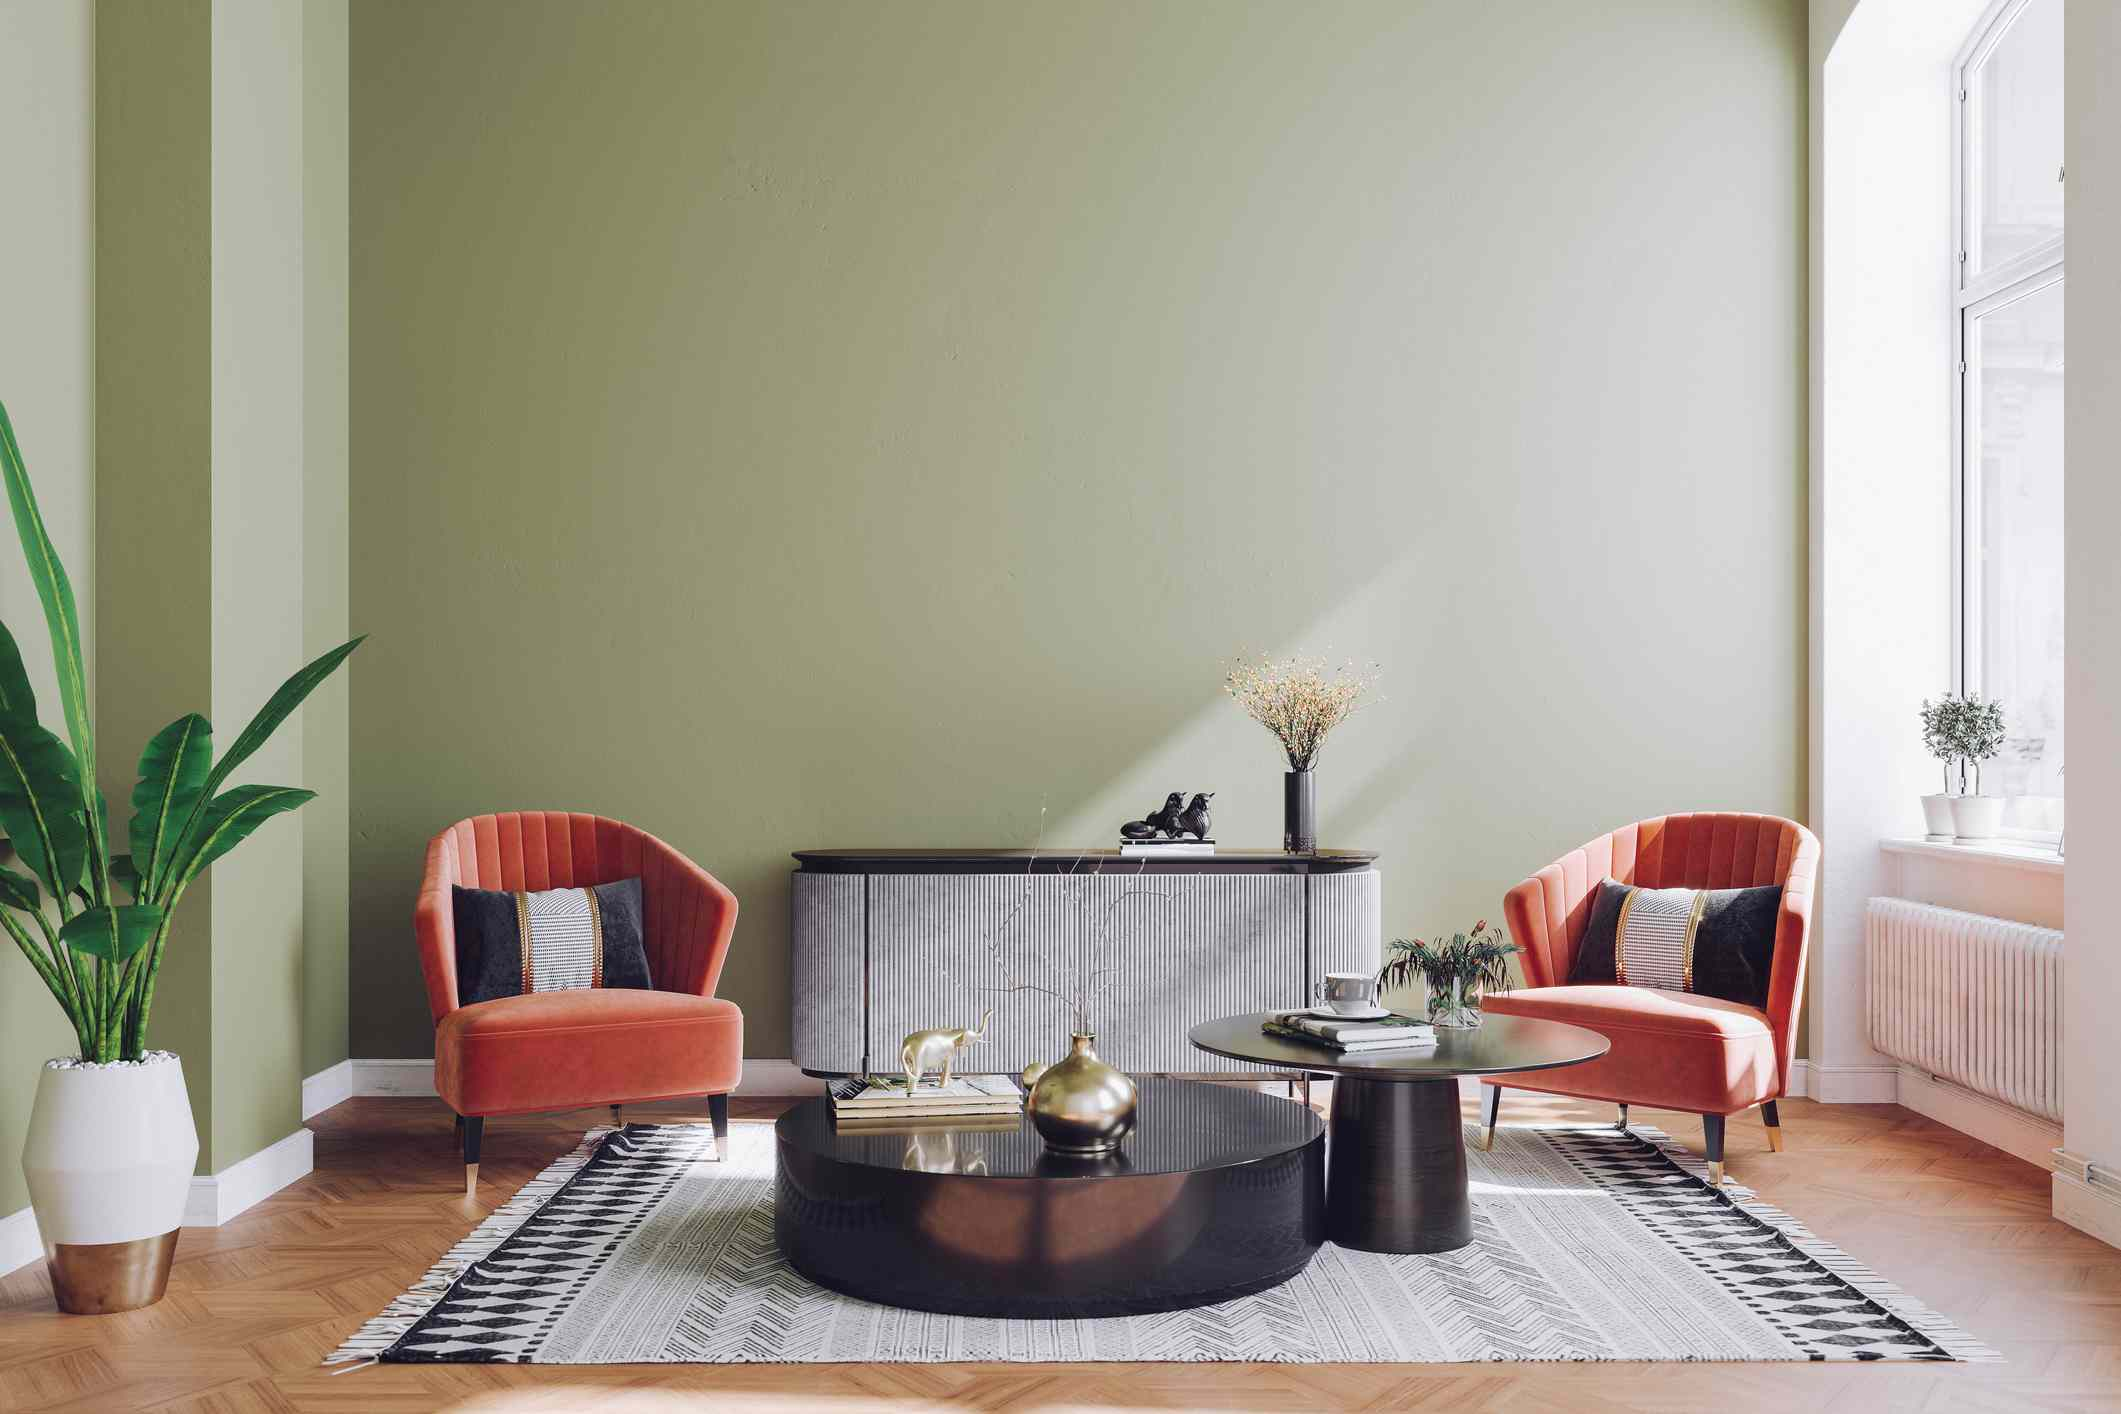 Two velvet chairs in a mid century living room